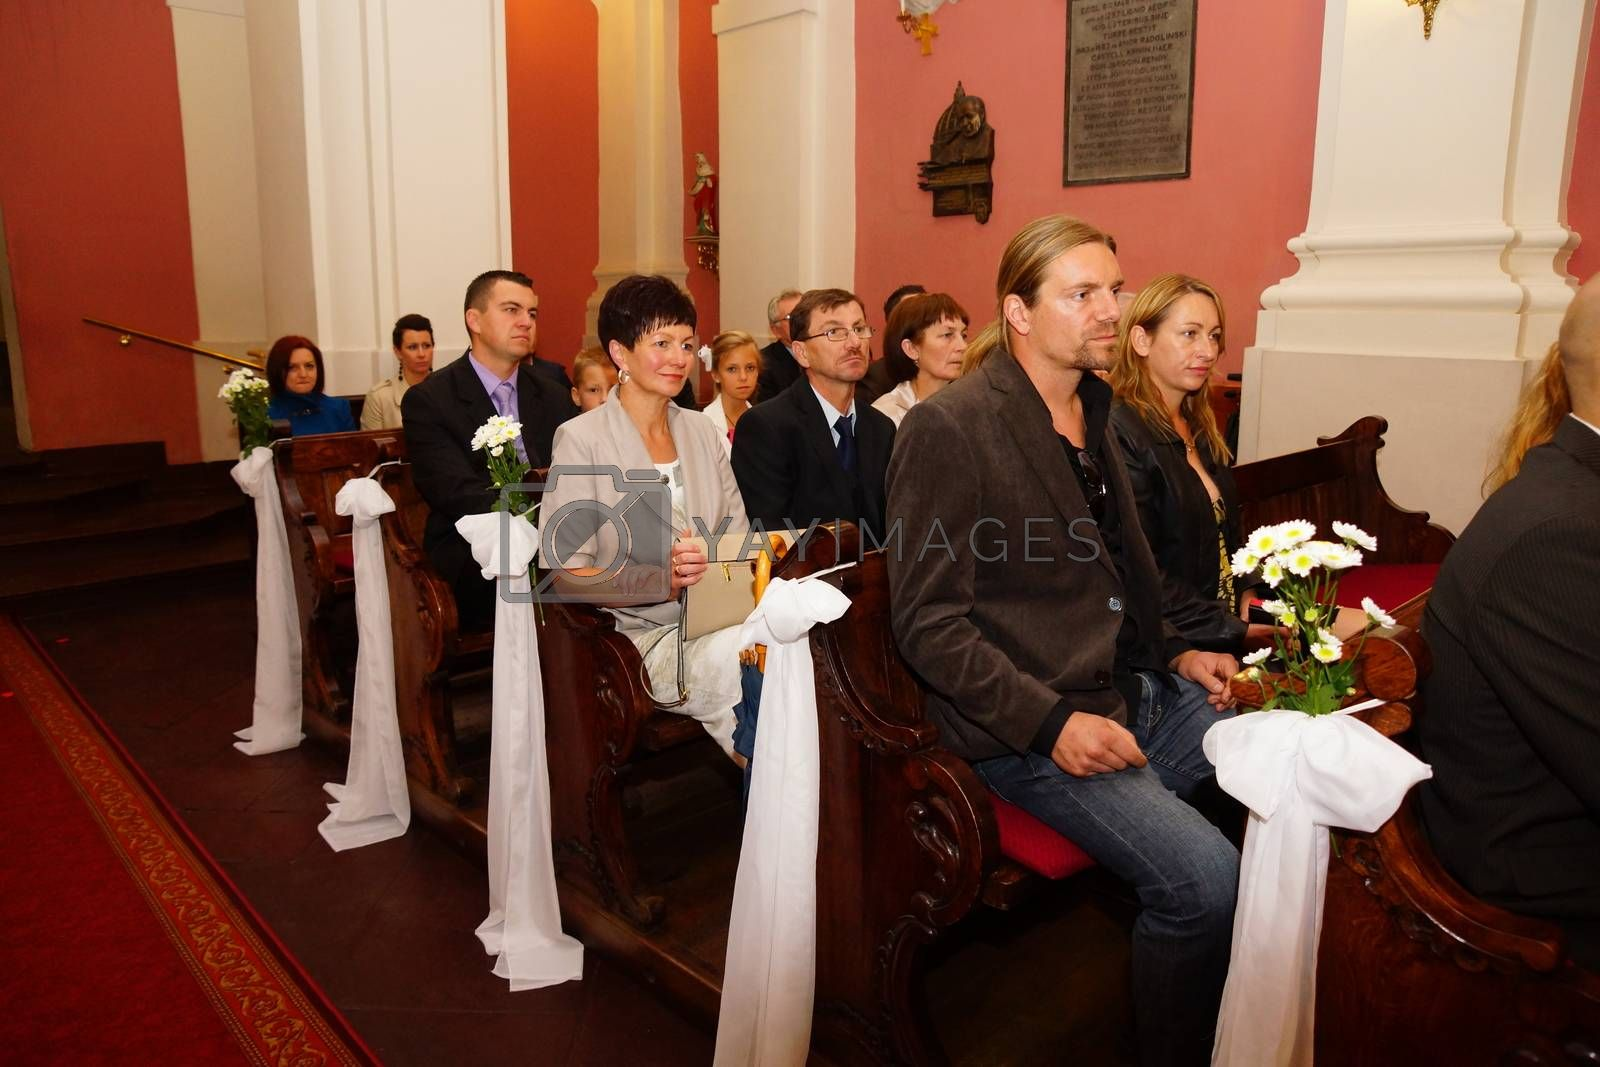 POZNAN, POLAND - SEPTEMBER 22, 2012: People sitting on benches at a church